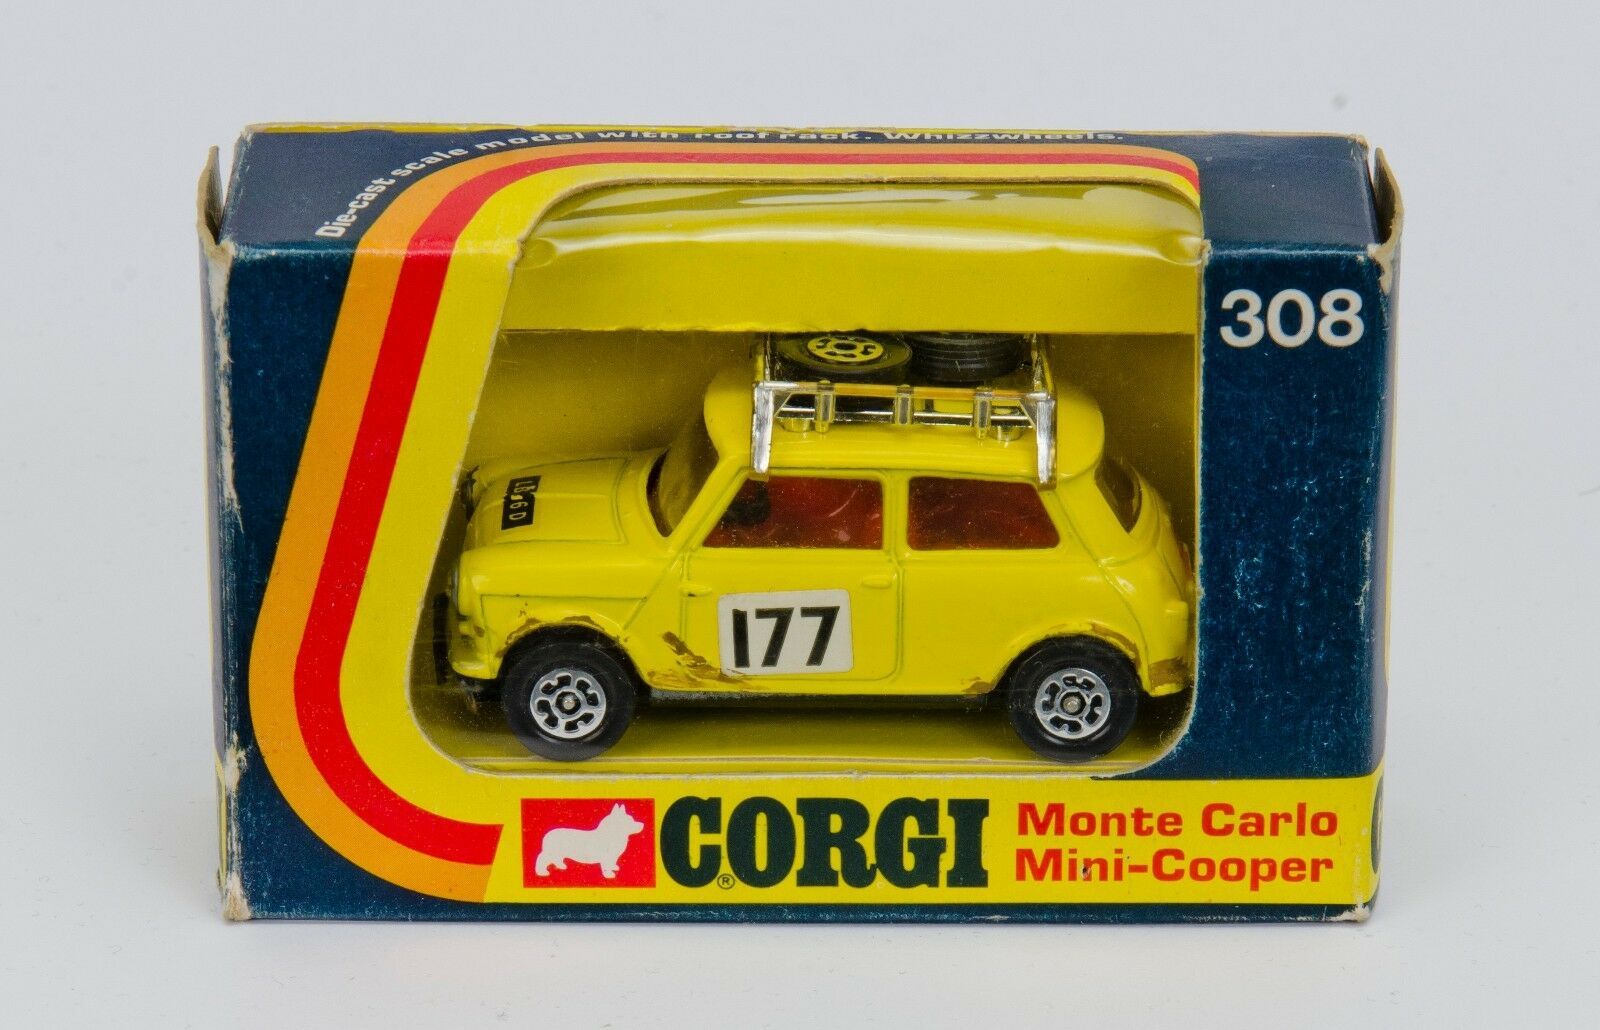 Corgi 308 Monte Carlo Carlo Carlo Mini-Cooper 'S'. Yellow. Red Interior. Boxed. 1970's f18b14